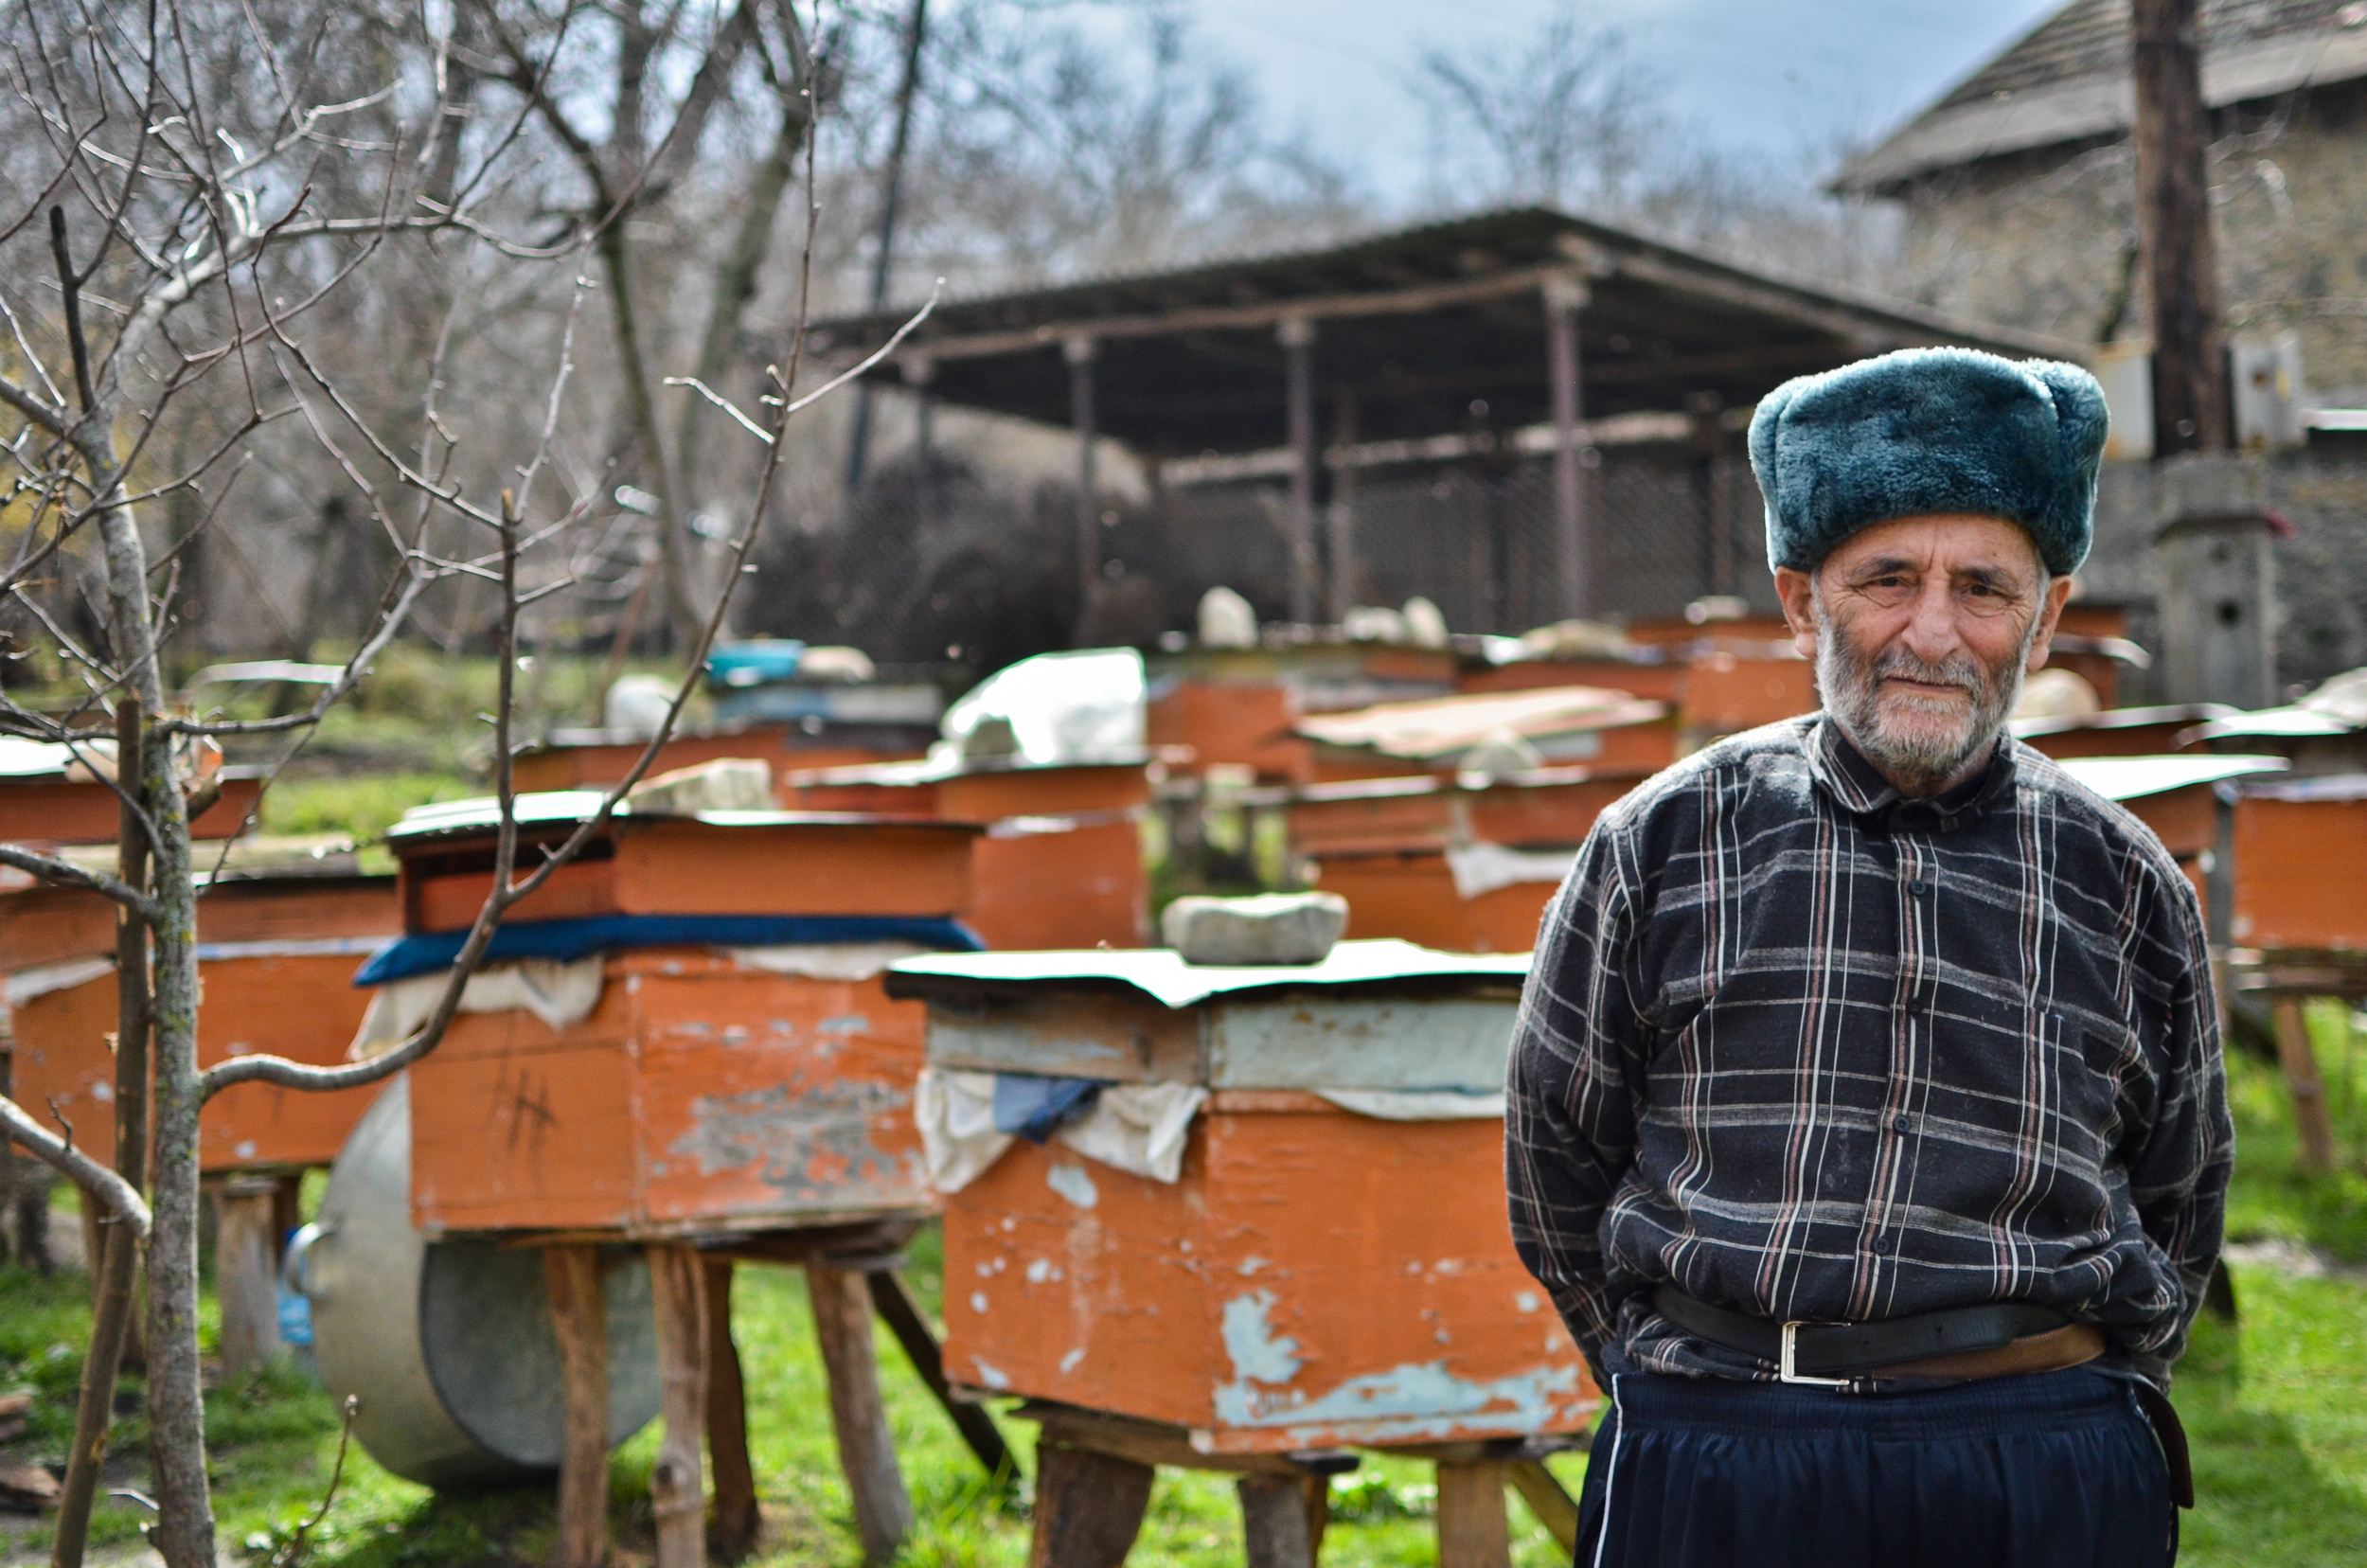 A beekeeper and farmer in Bash Shabalid, a village at the base of the Greater Caucasus Mountains.